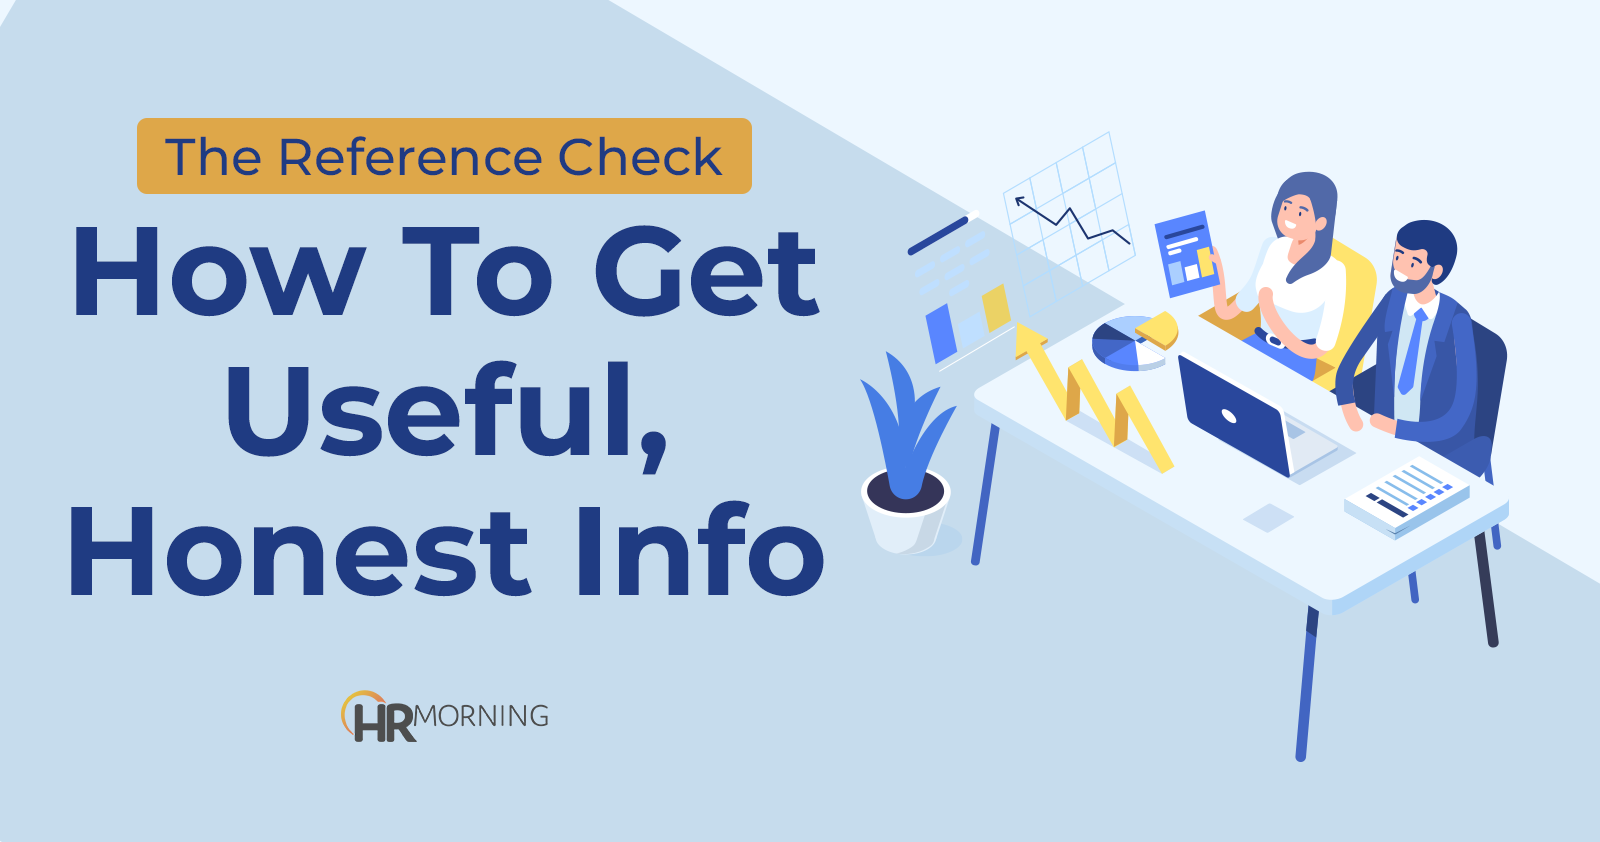 Reference Check: How to get useful, honest info